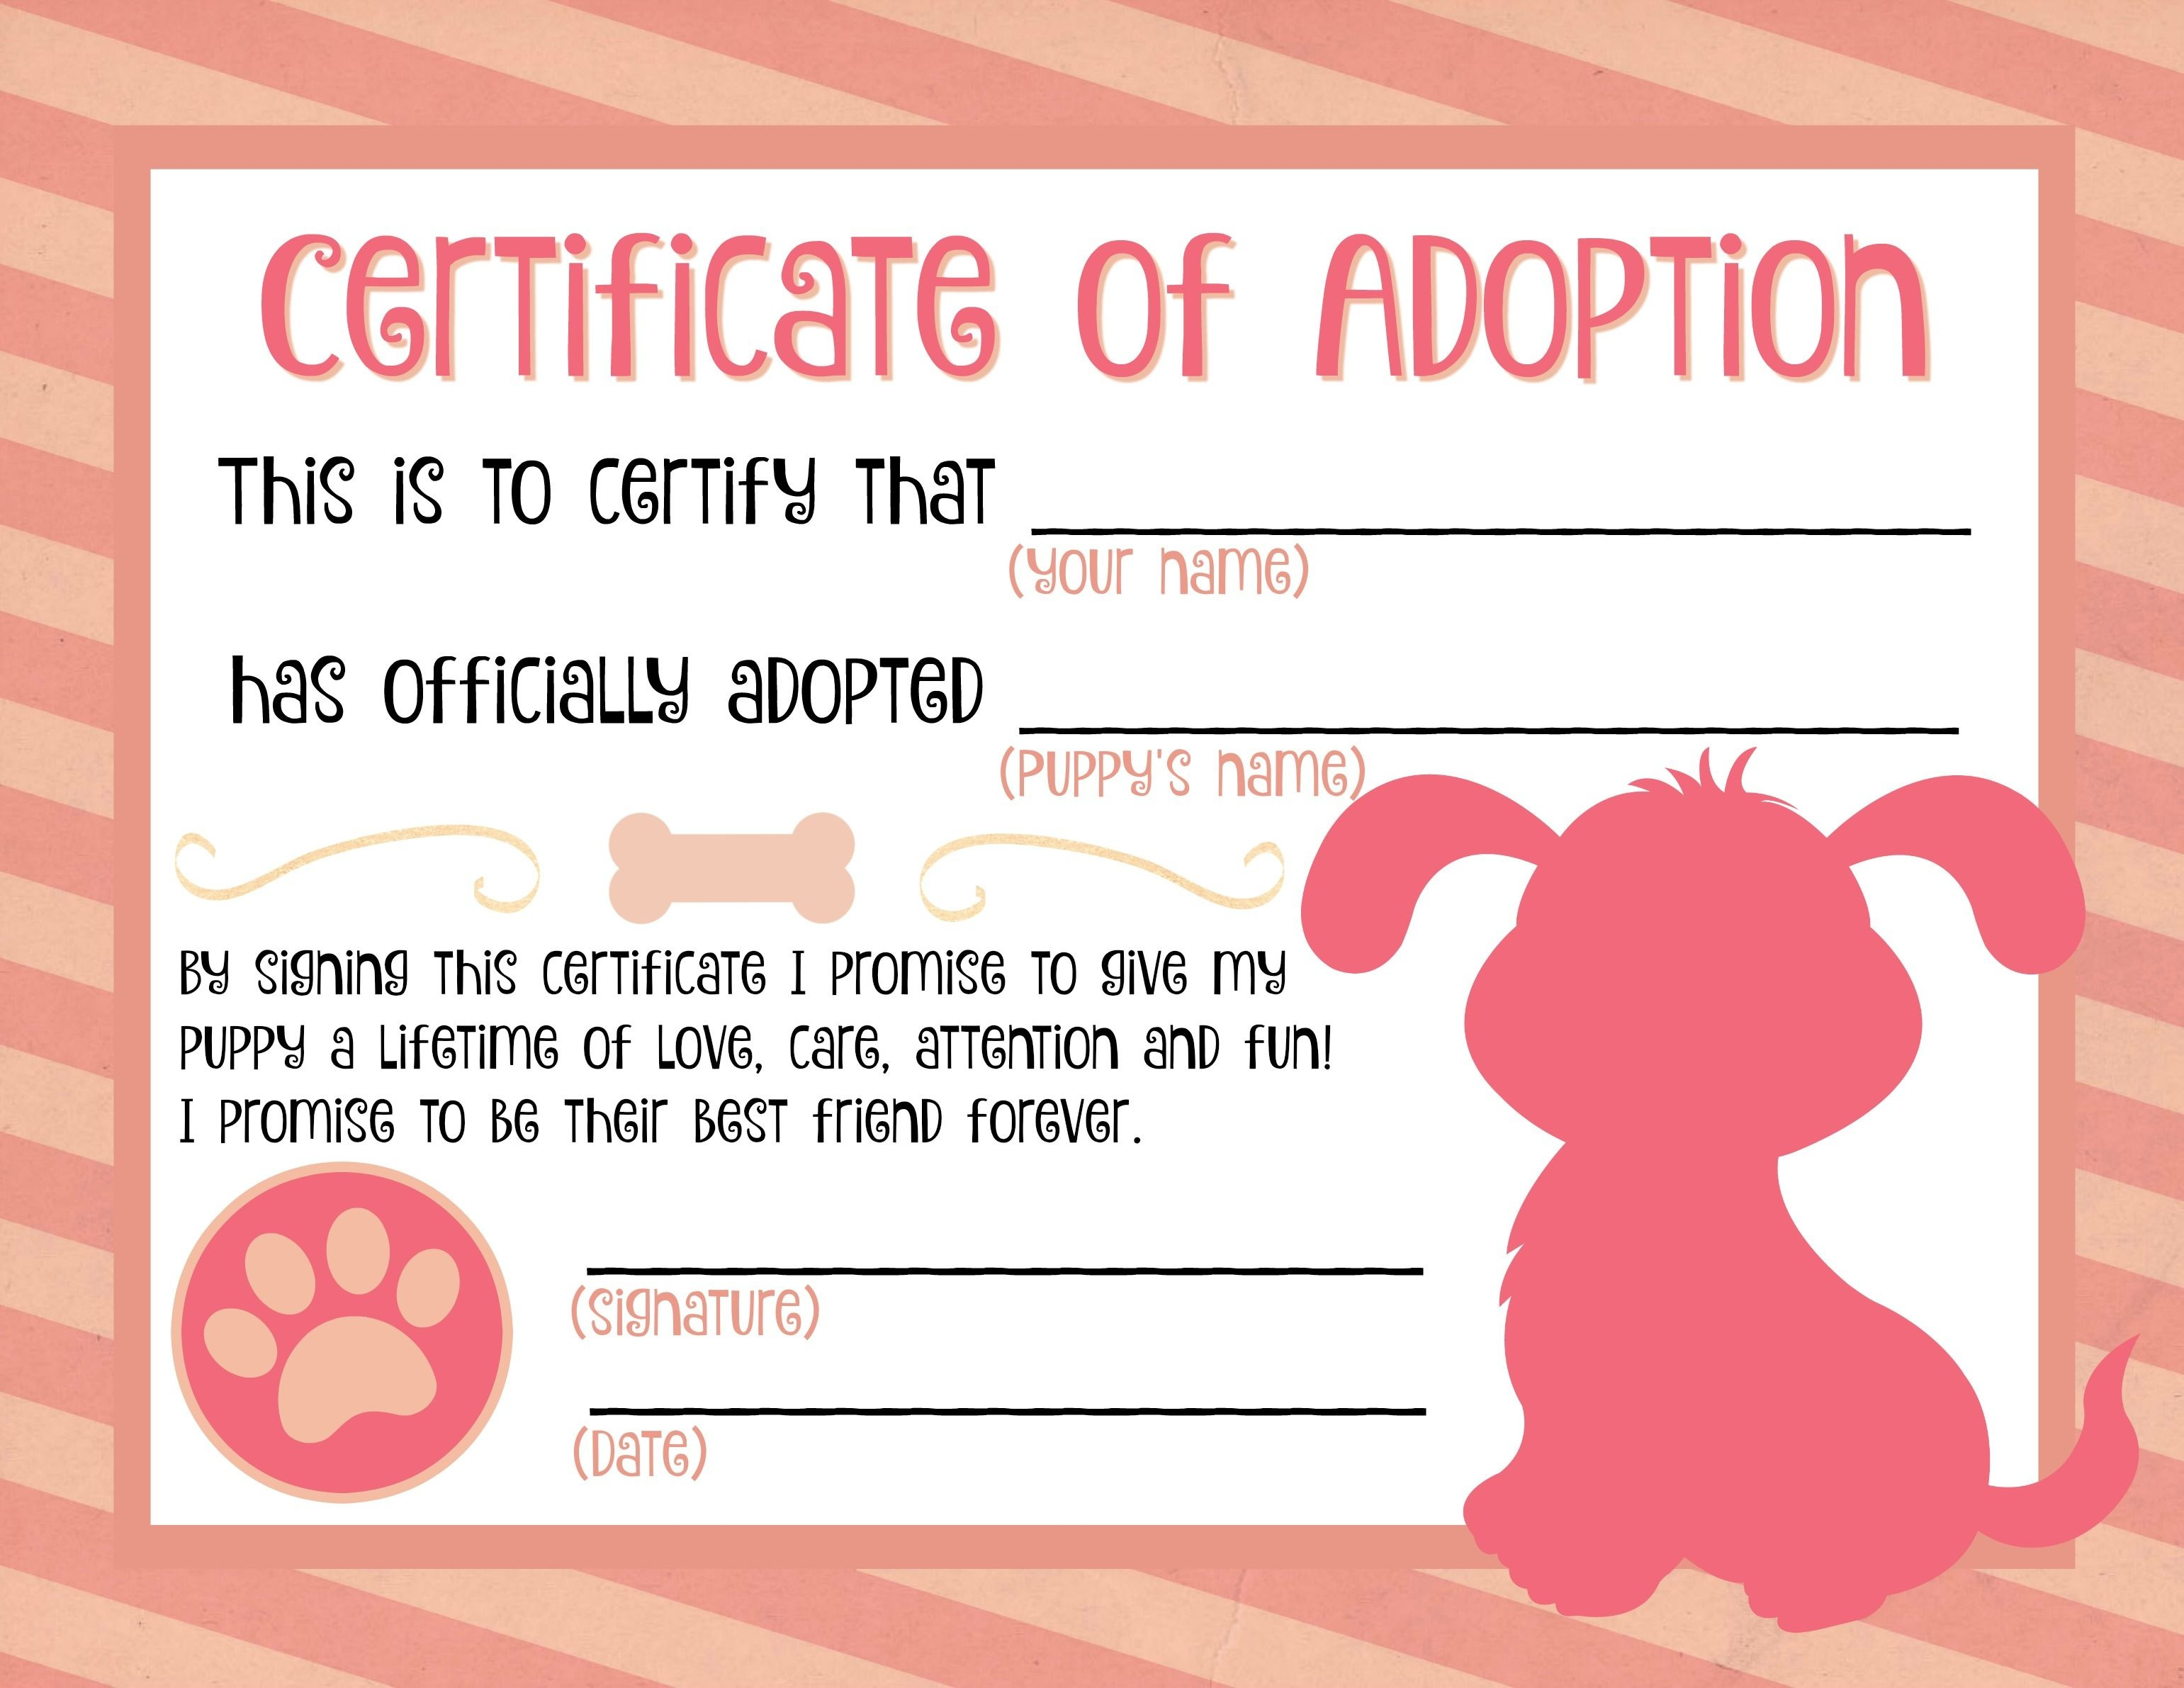 Puppy Adoption Certificate … | Party Ideas In 2019… - Fake Adoption Certificate Free Printable